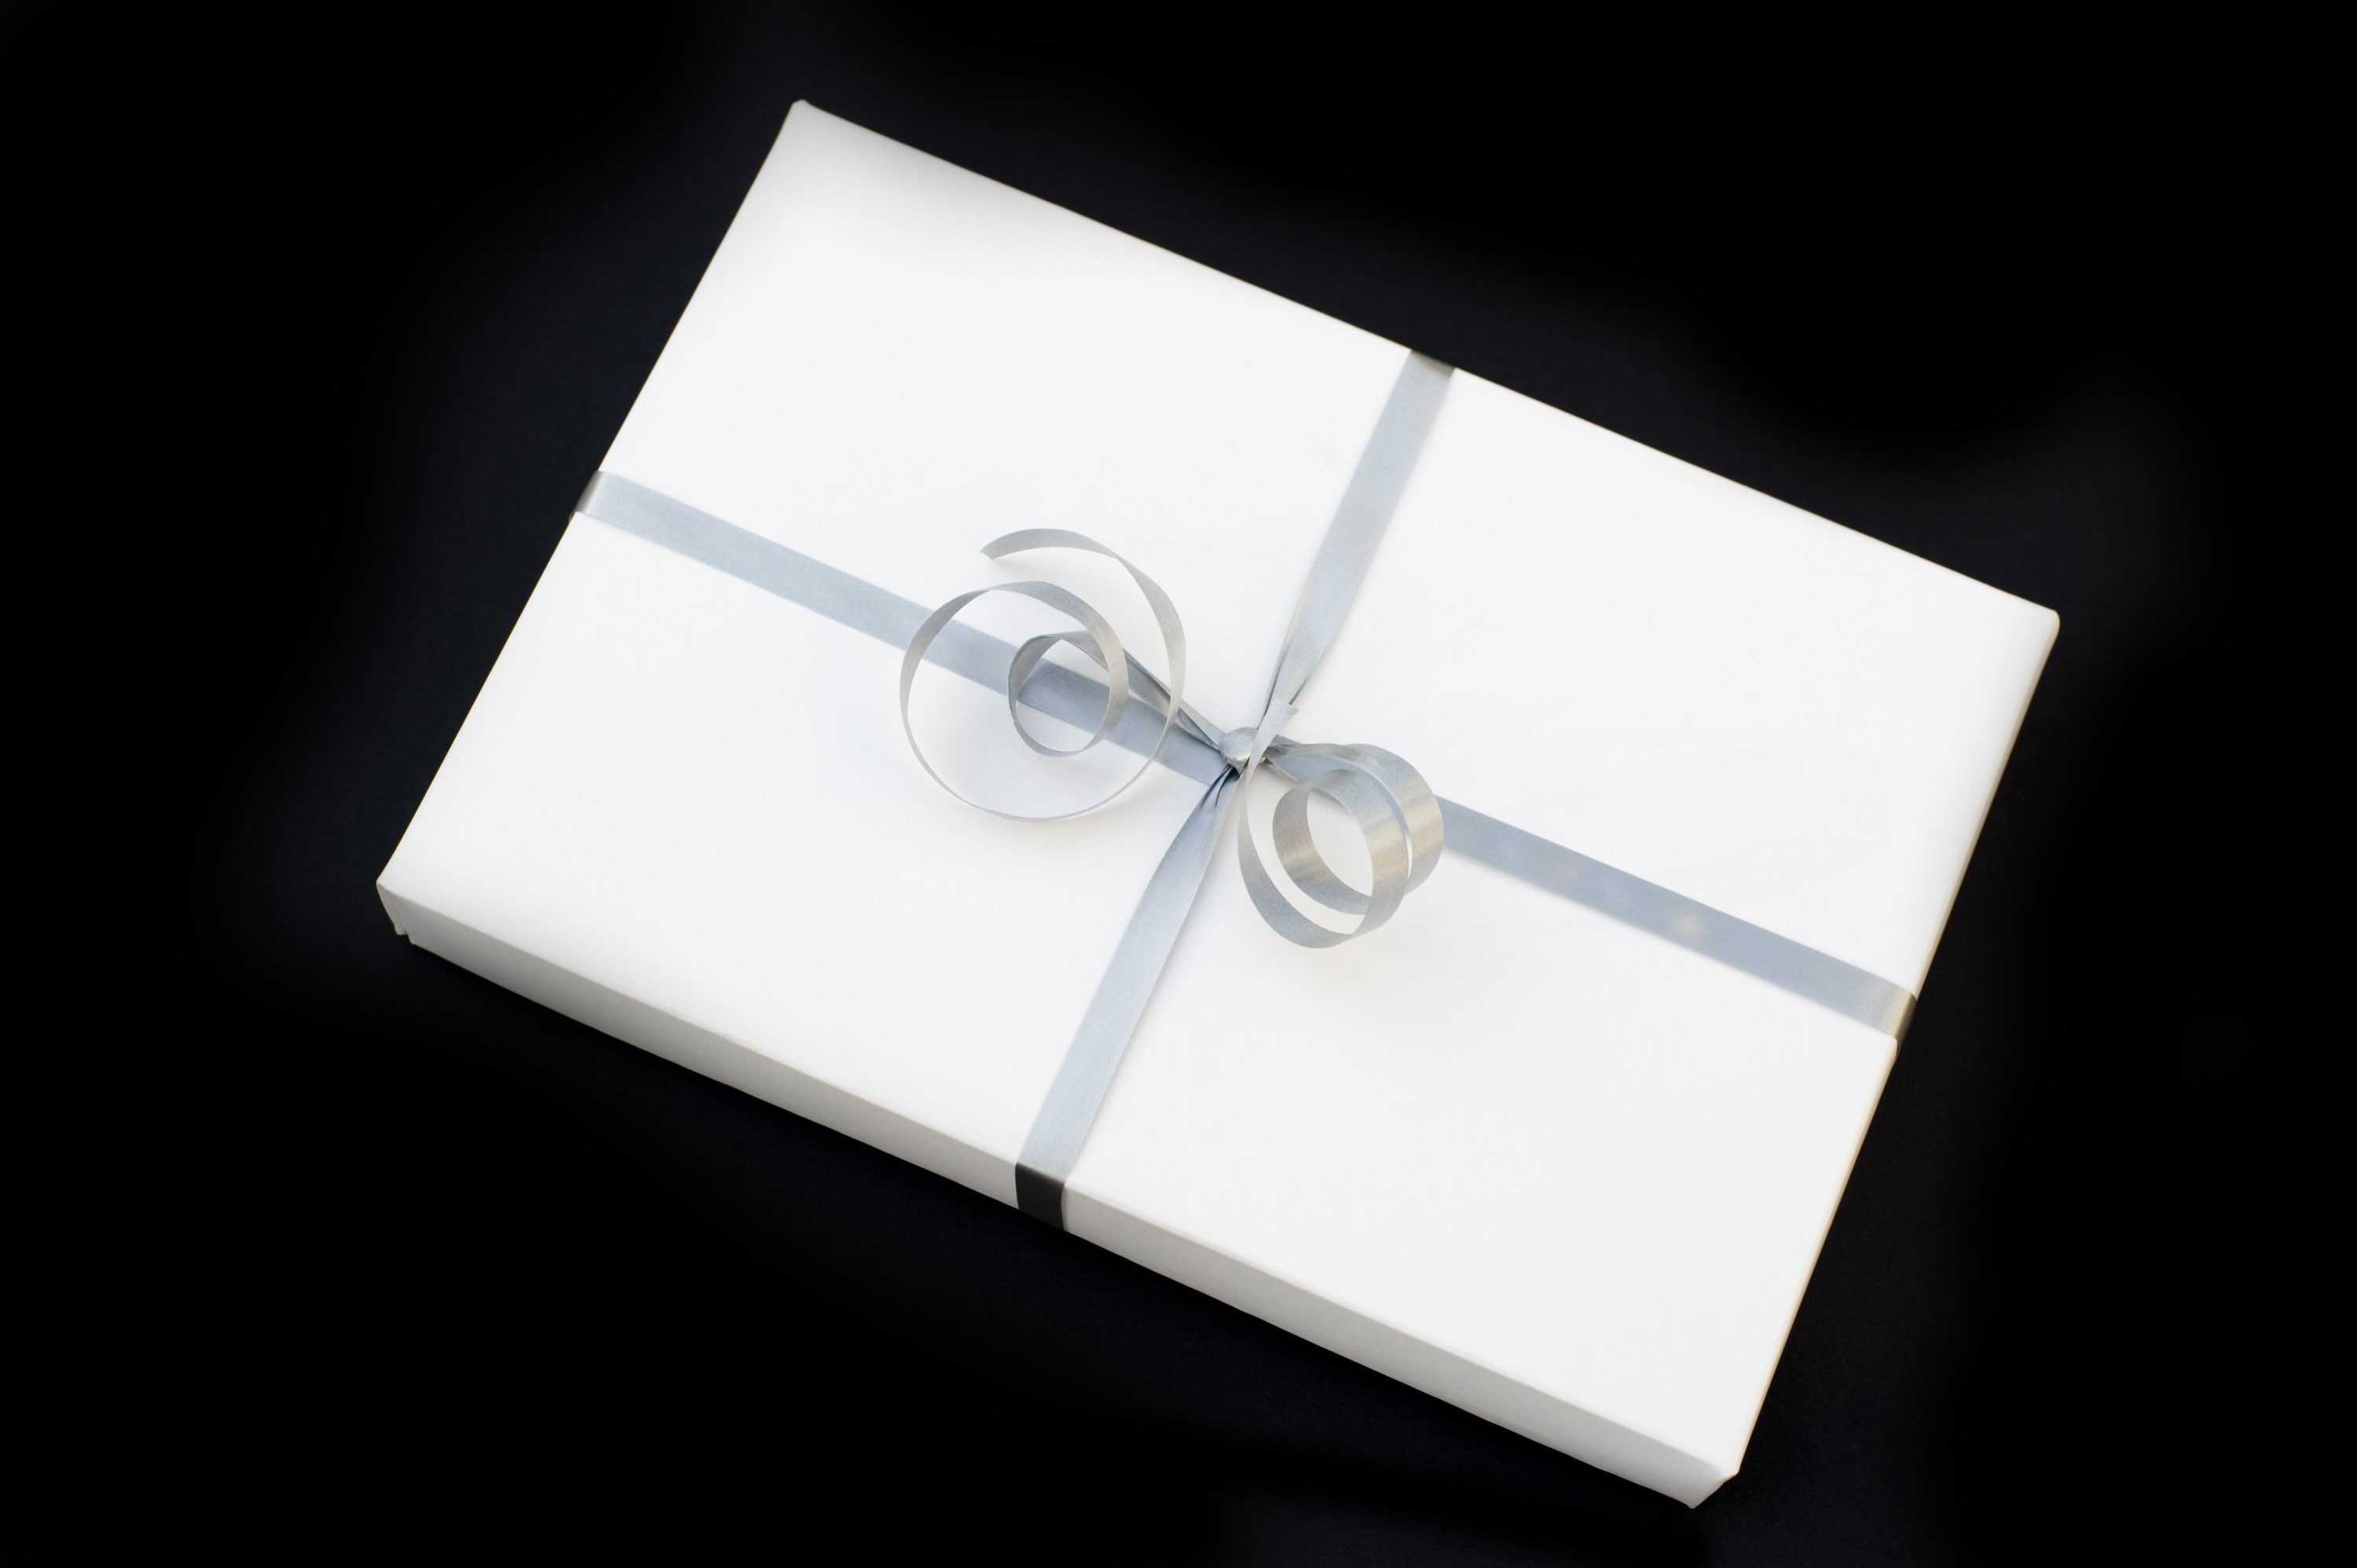 a white wrapped christmas gift with a silver bow against a black backdrop